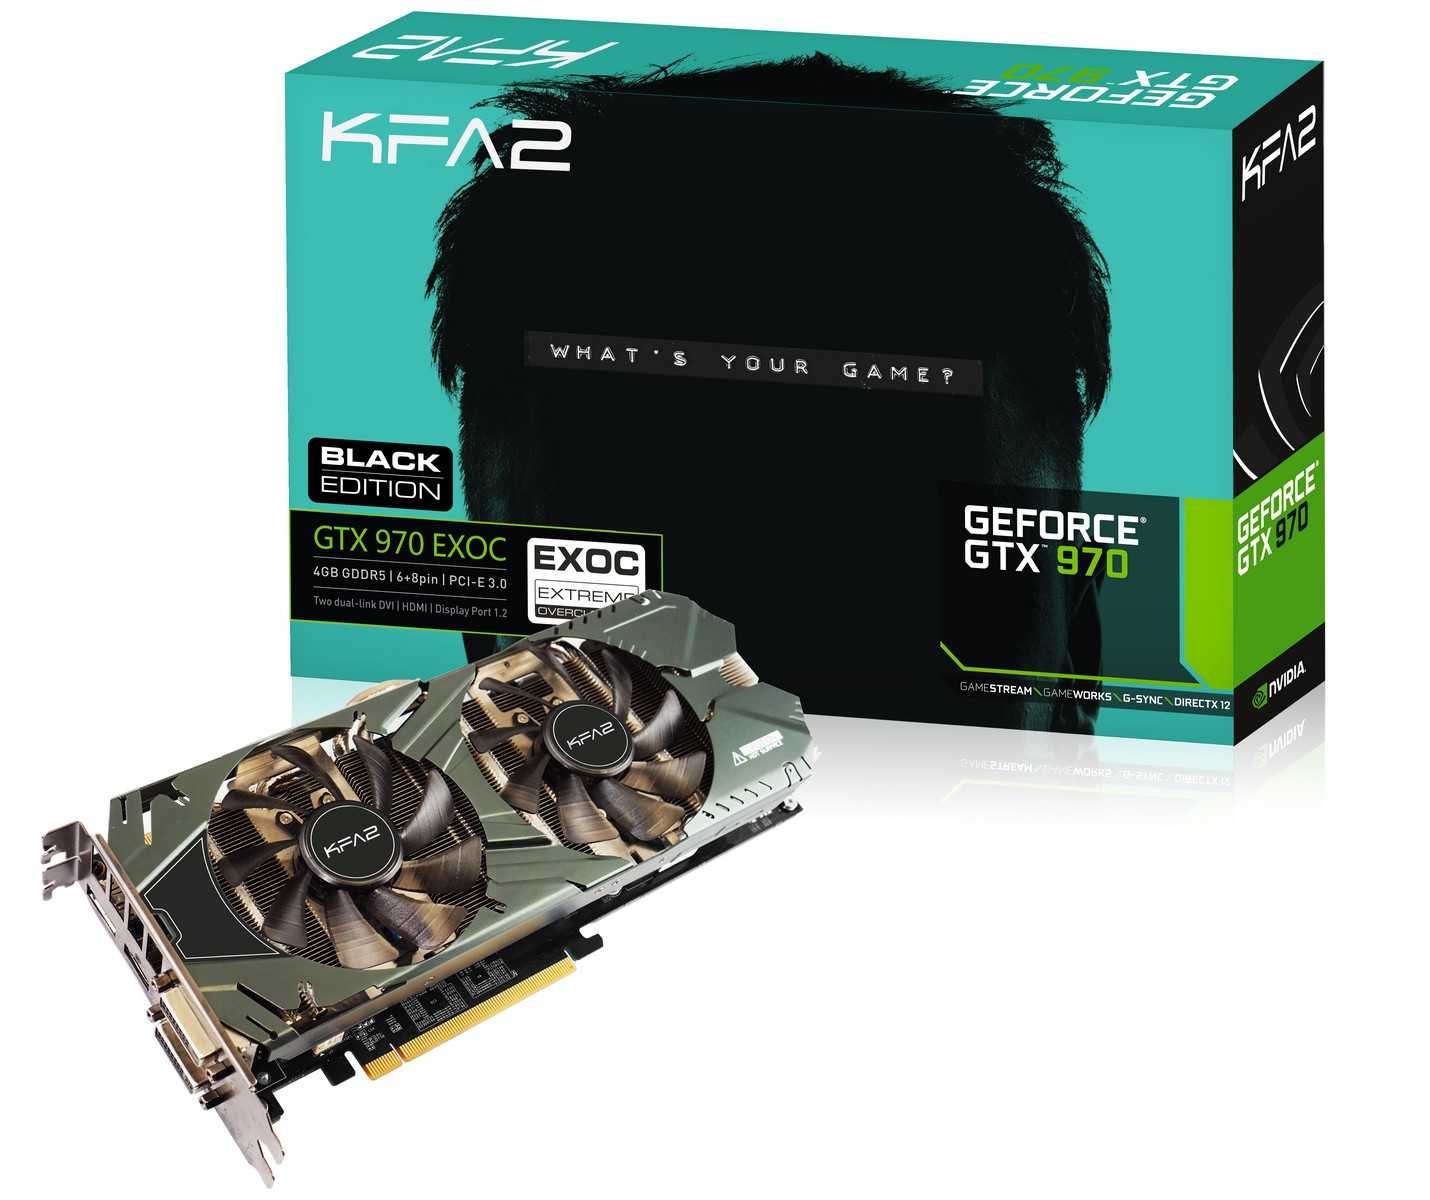 KFA2 GeForce GTX 970 Black EXOC Sniper Edition